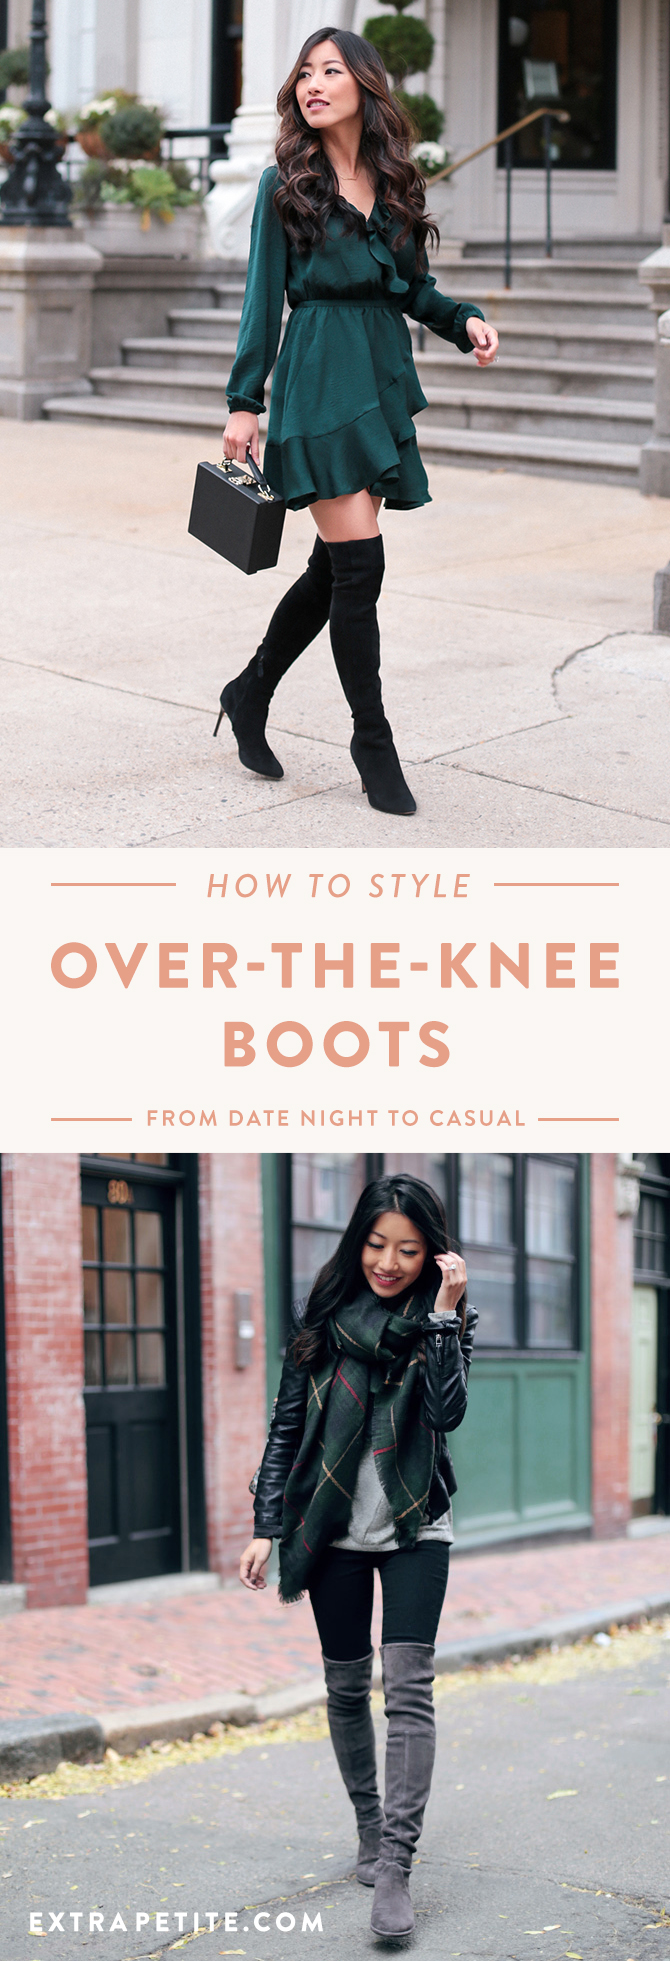 5be589864e6 How to Style Over-The-Knee Boots    From Date Night To Casual